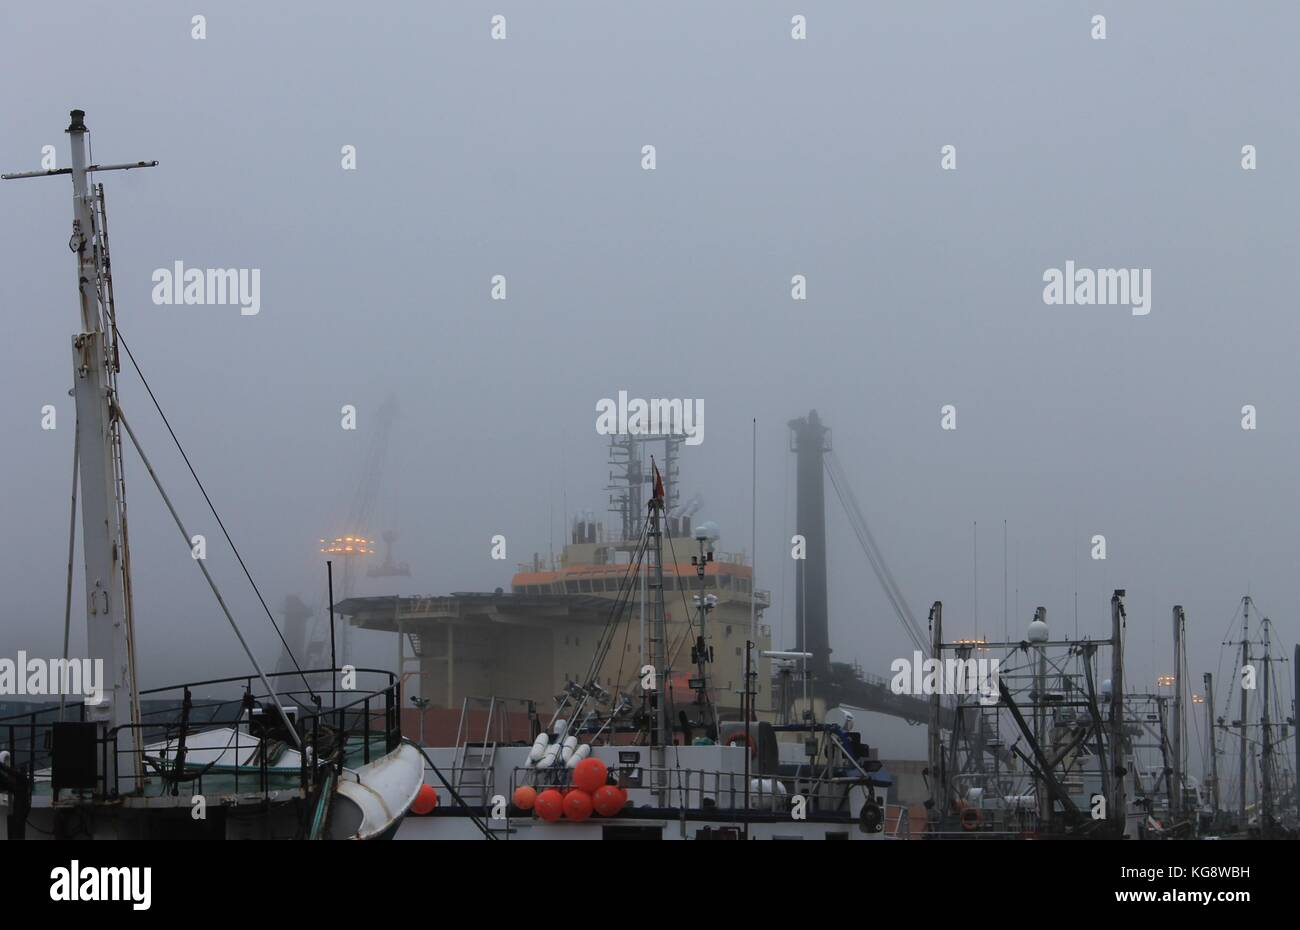 Boats in the fog, St. John's Harbour, St, John's, Newfoundland and Labrador, Canada. - Stock Image